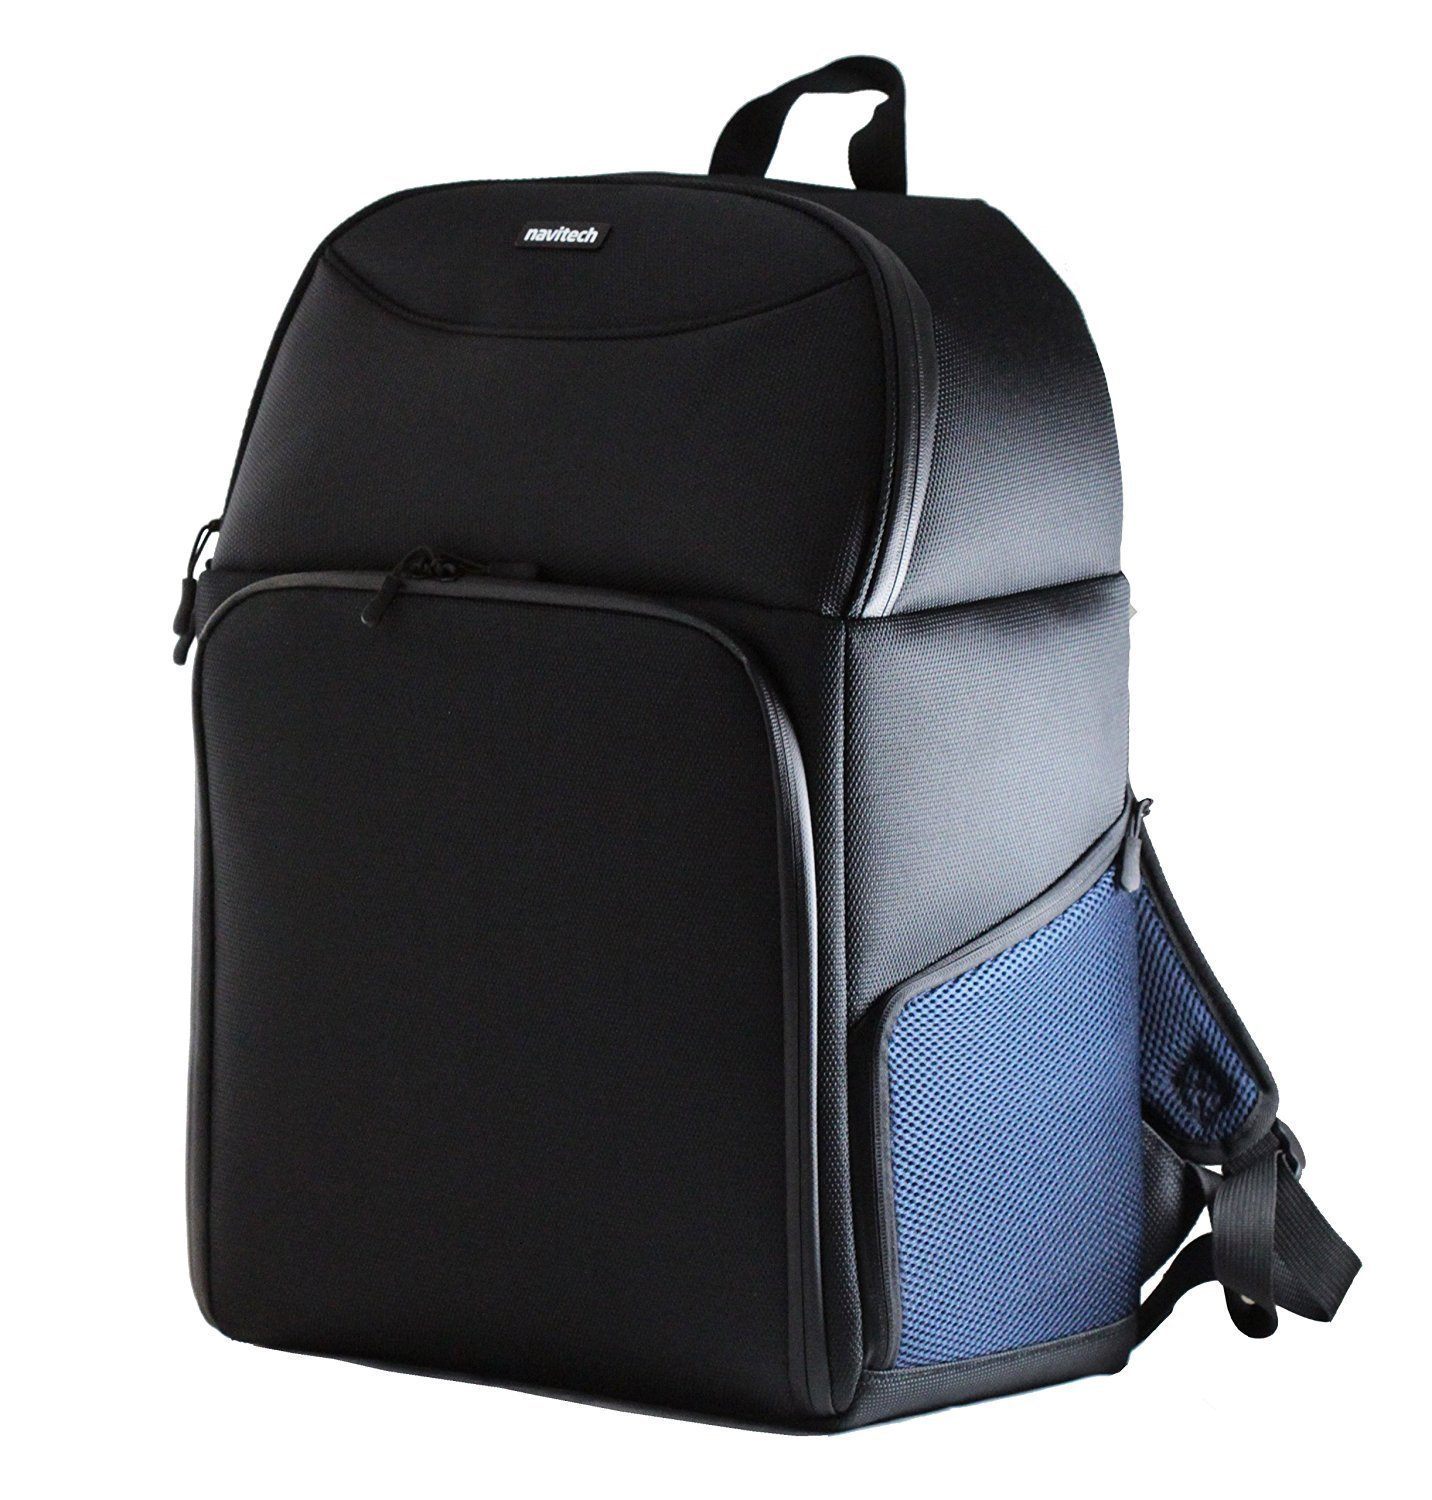 c6b36fd724a5 Navitech Rugged Black & Blue Carry Backpack / Rucksack / Case For The Canon  9596B008 PIXMA iP110